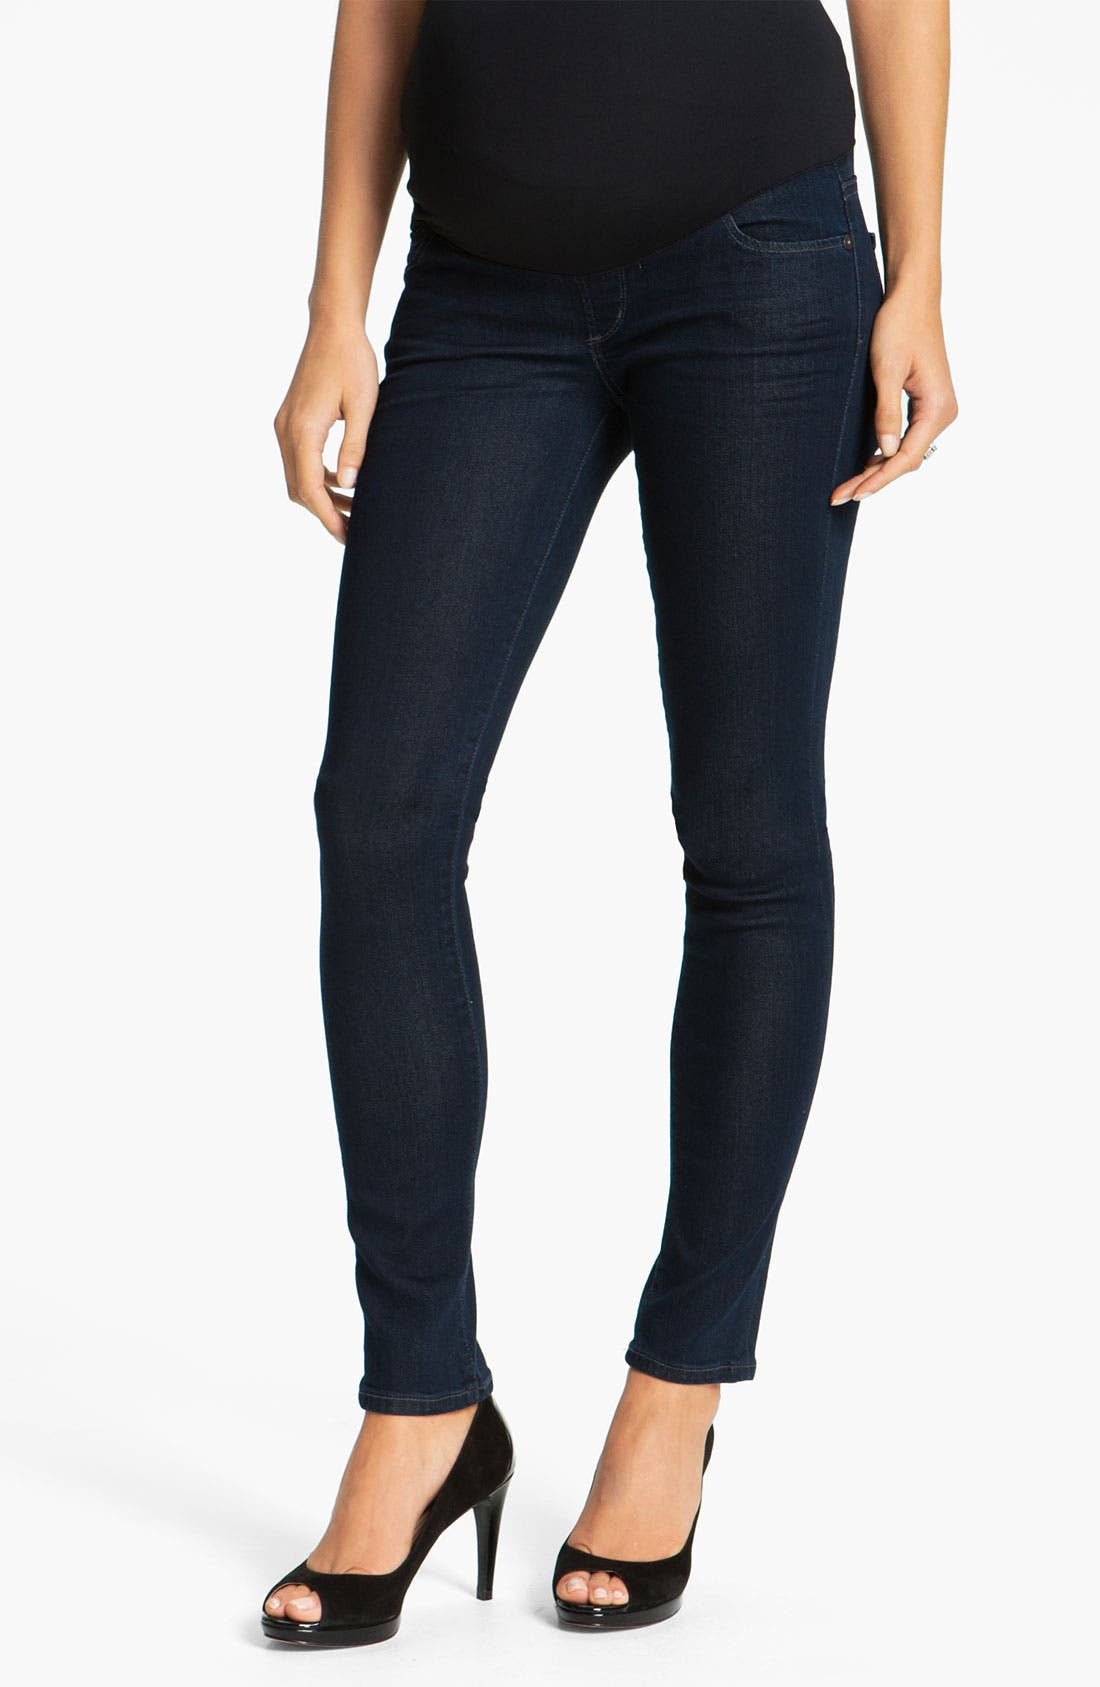 Alternate Image 1 Selected - Citizens of Humanity Maternity Skinny Jeans (Divine)